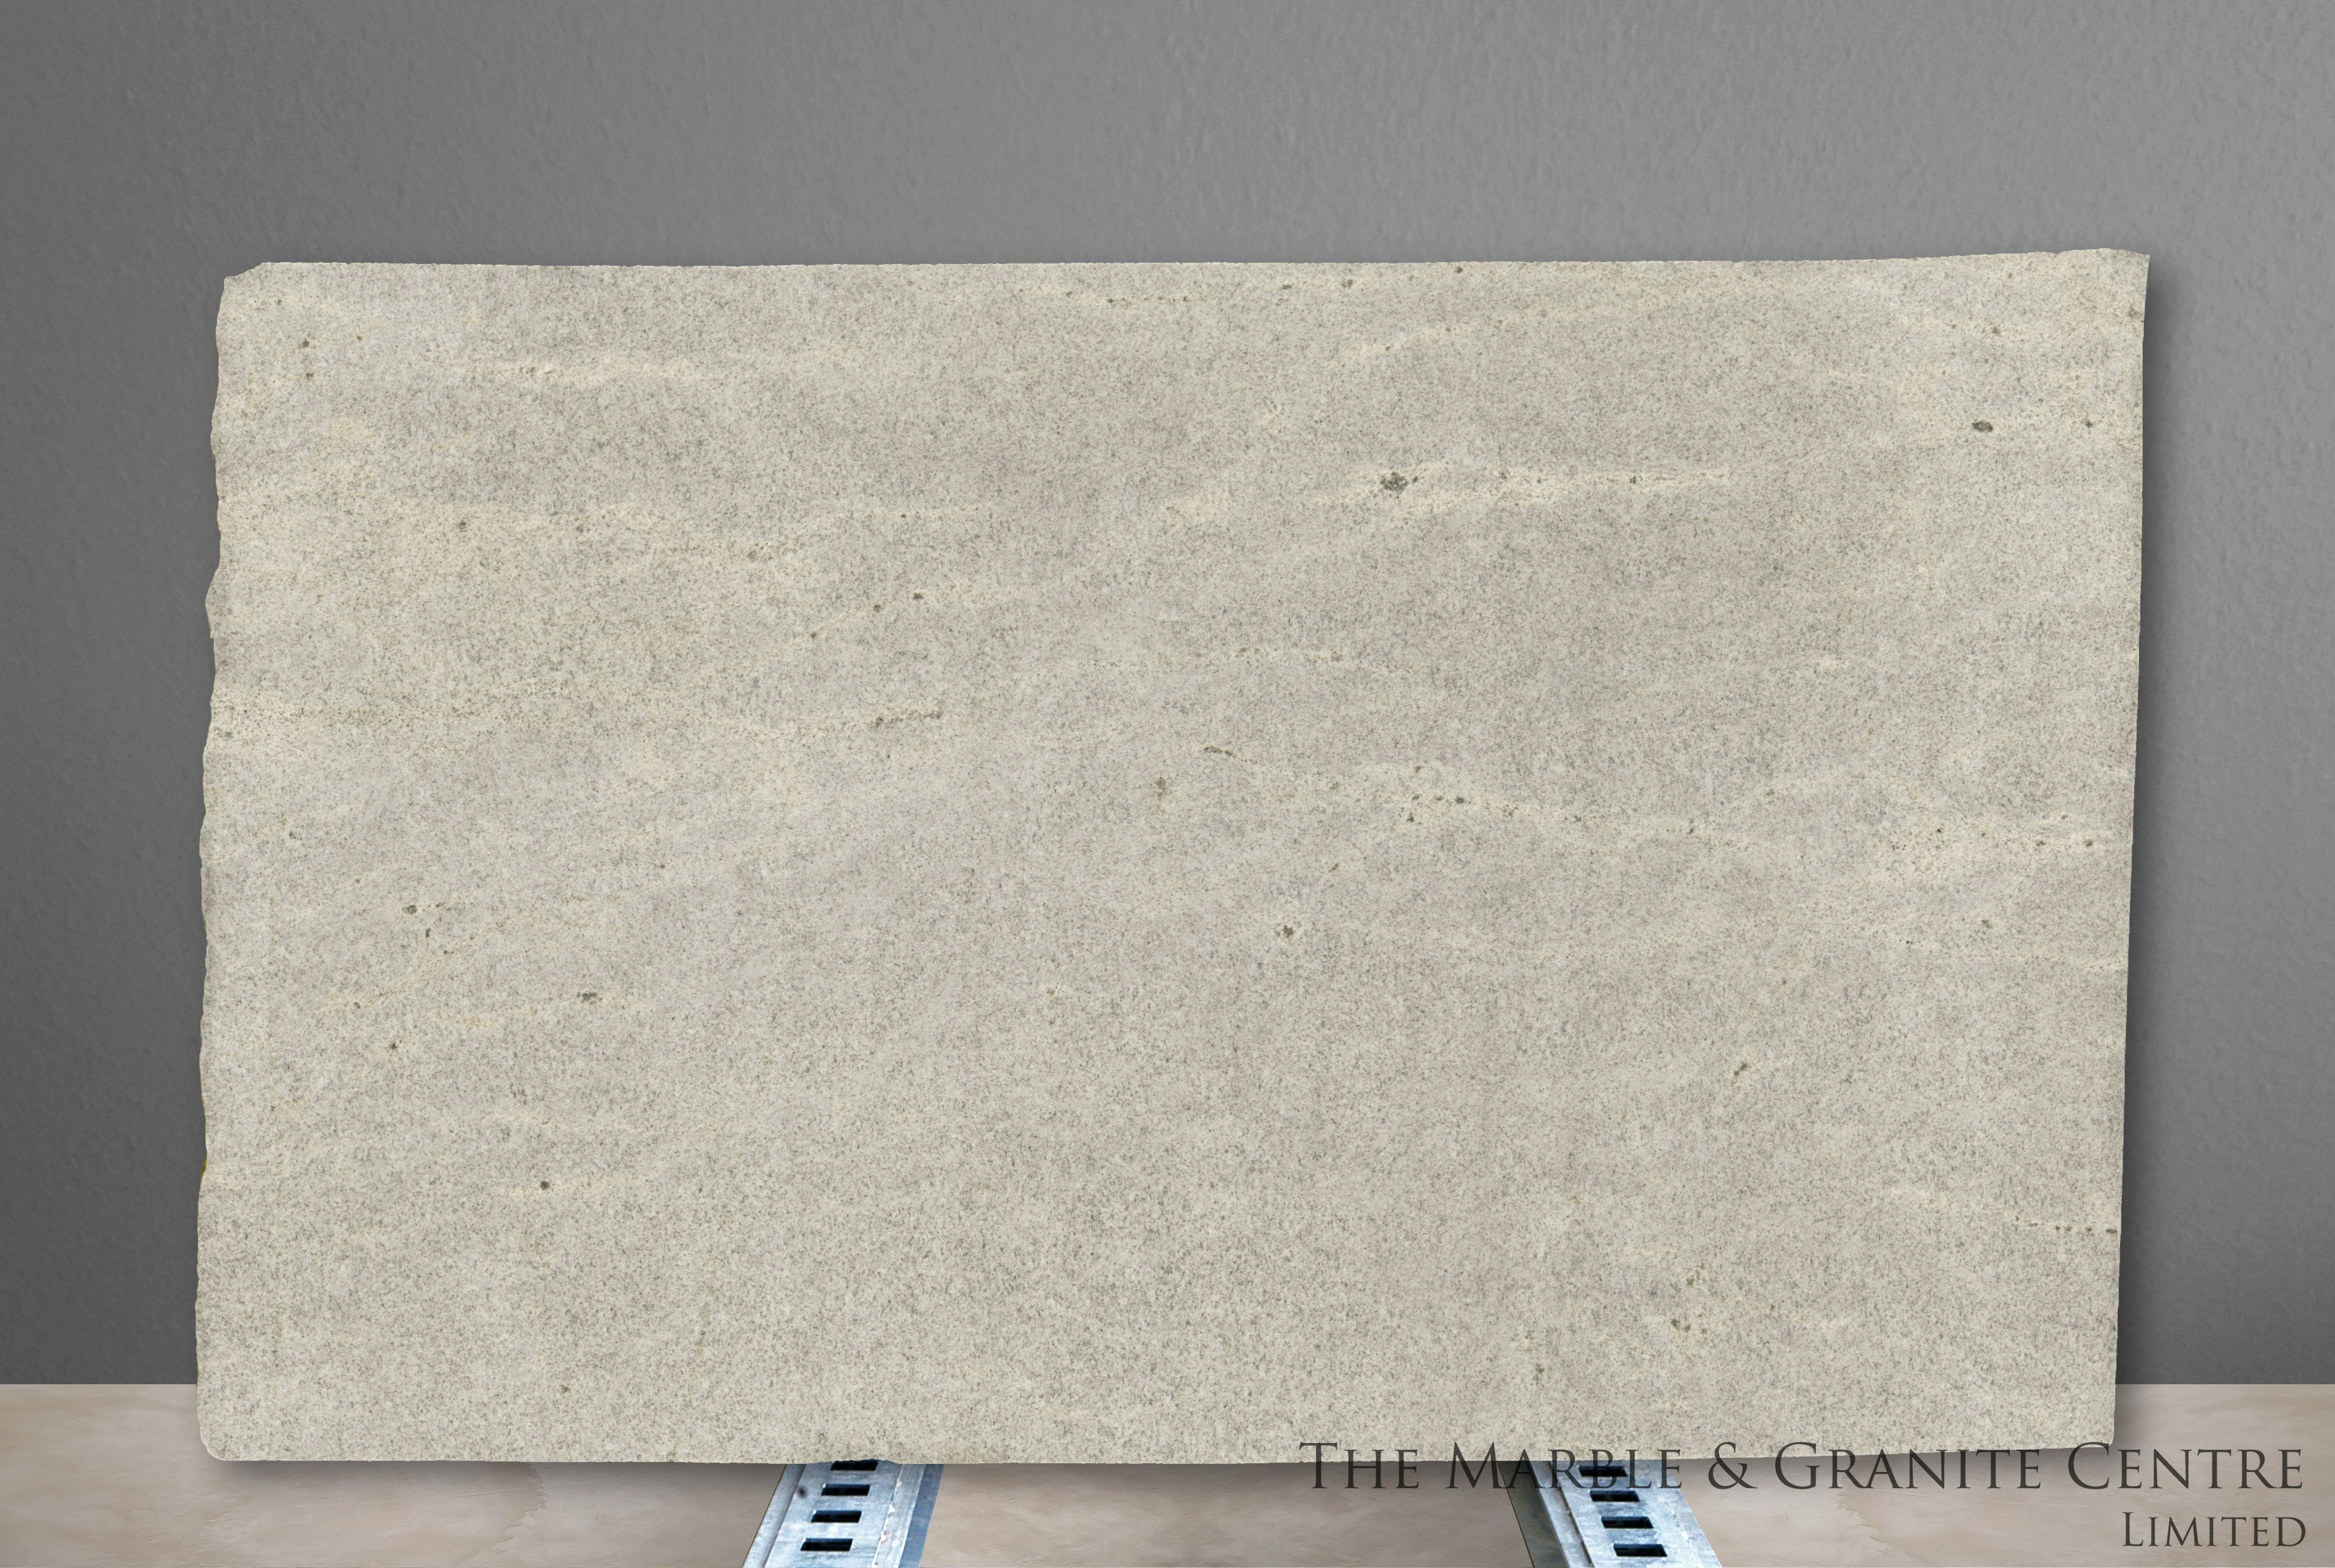 Granite New Kashmir White Polished 30 mm [27140]